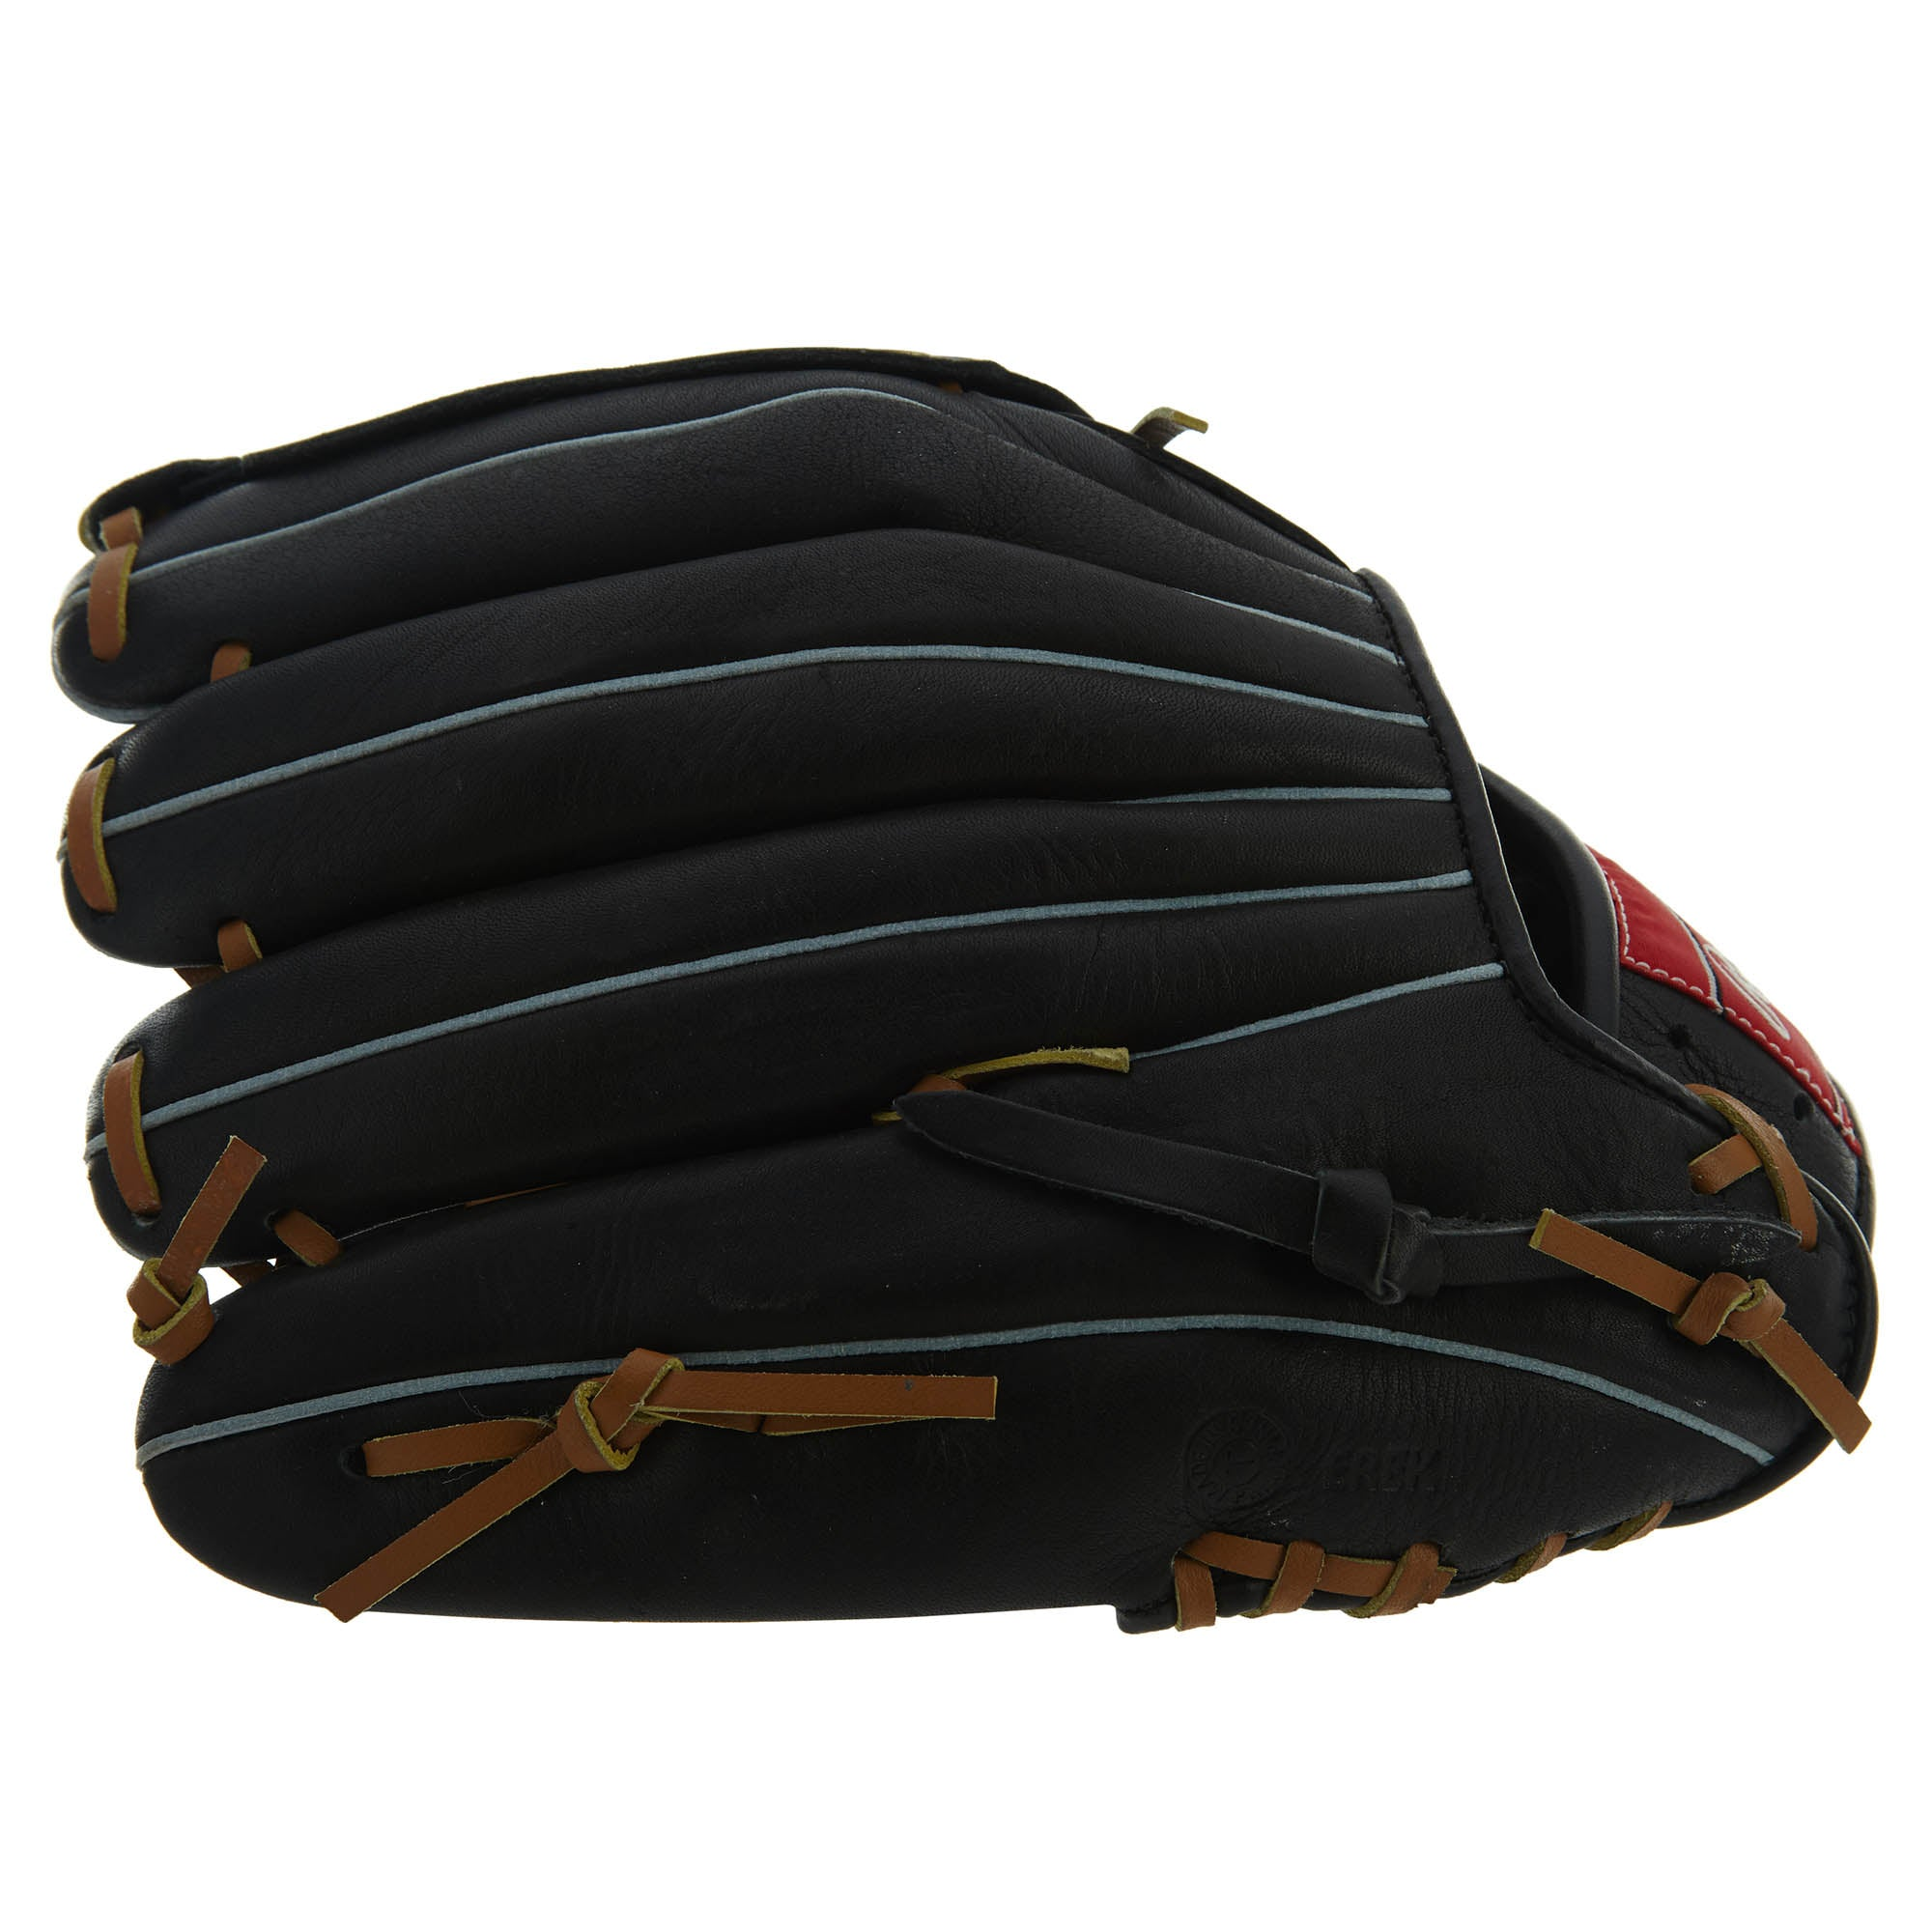 Rawlings Players Series 11.5-inch Youth Baseball Glove Mens Style   Rb –  Sneaker Experts de6efaec77